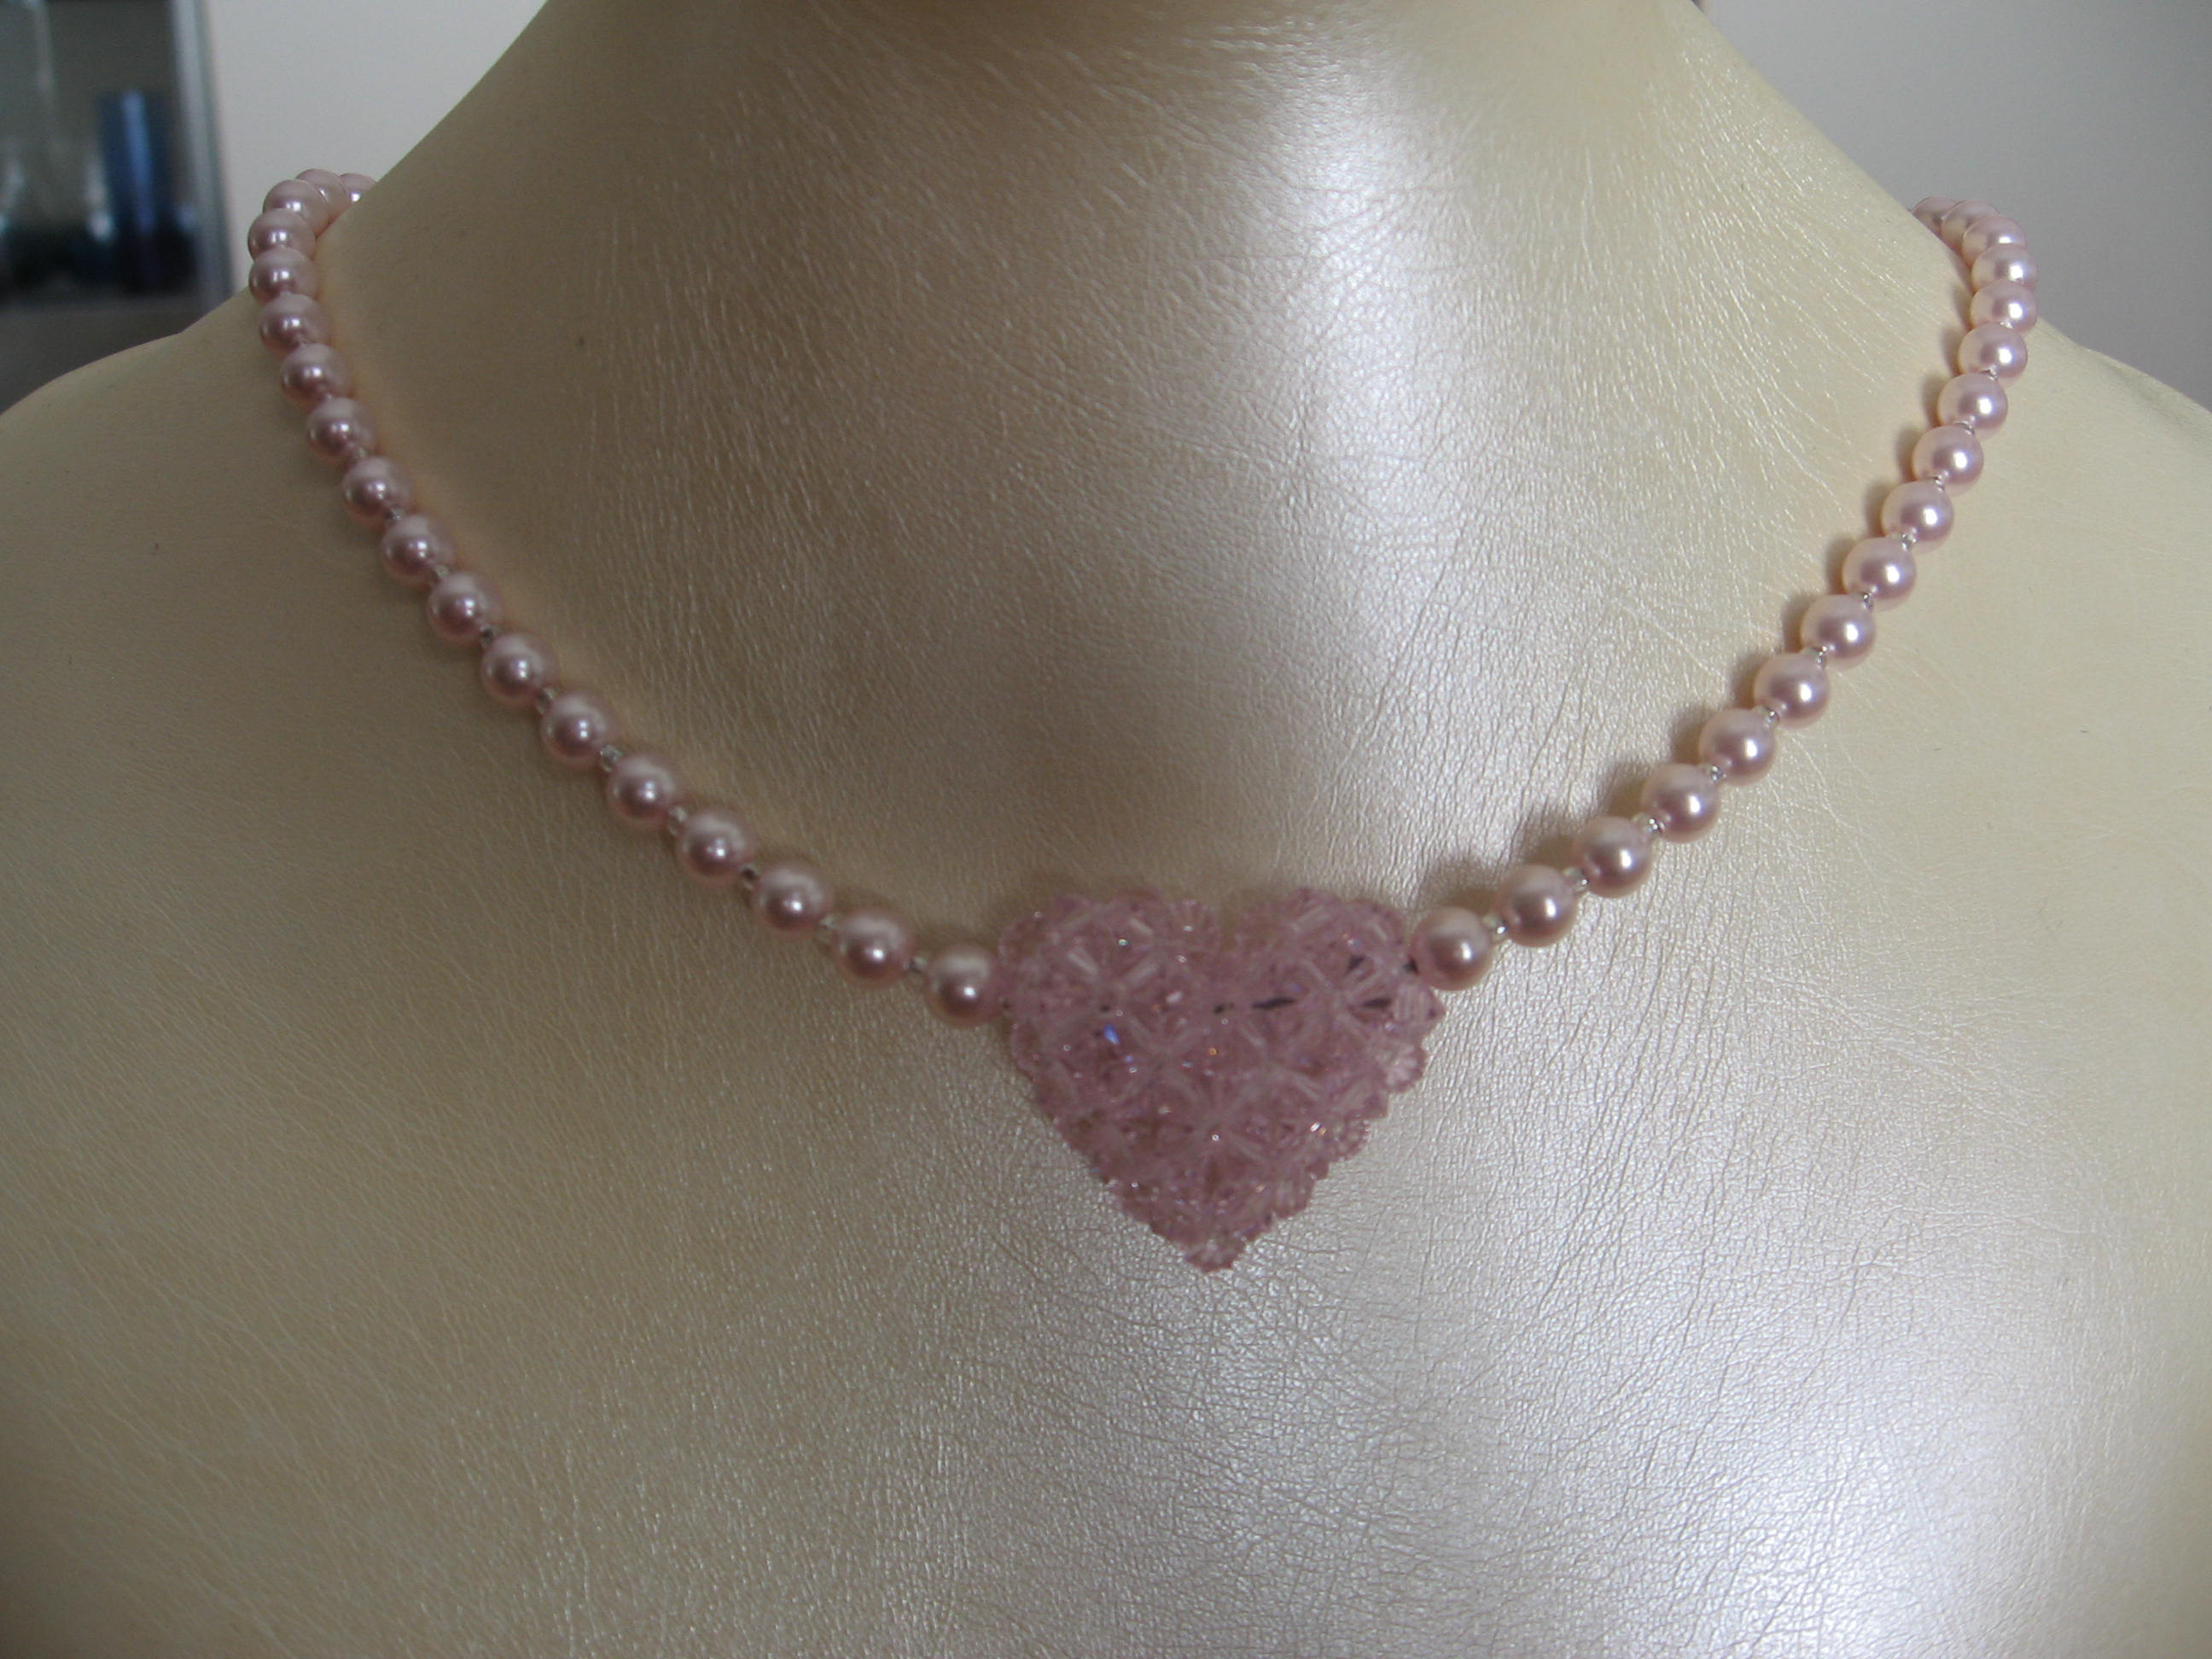 baroque j beaded org at tourmaline main jewelry necklaces pink for and id pearl luscious sale necklace